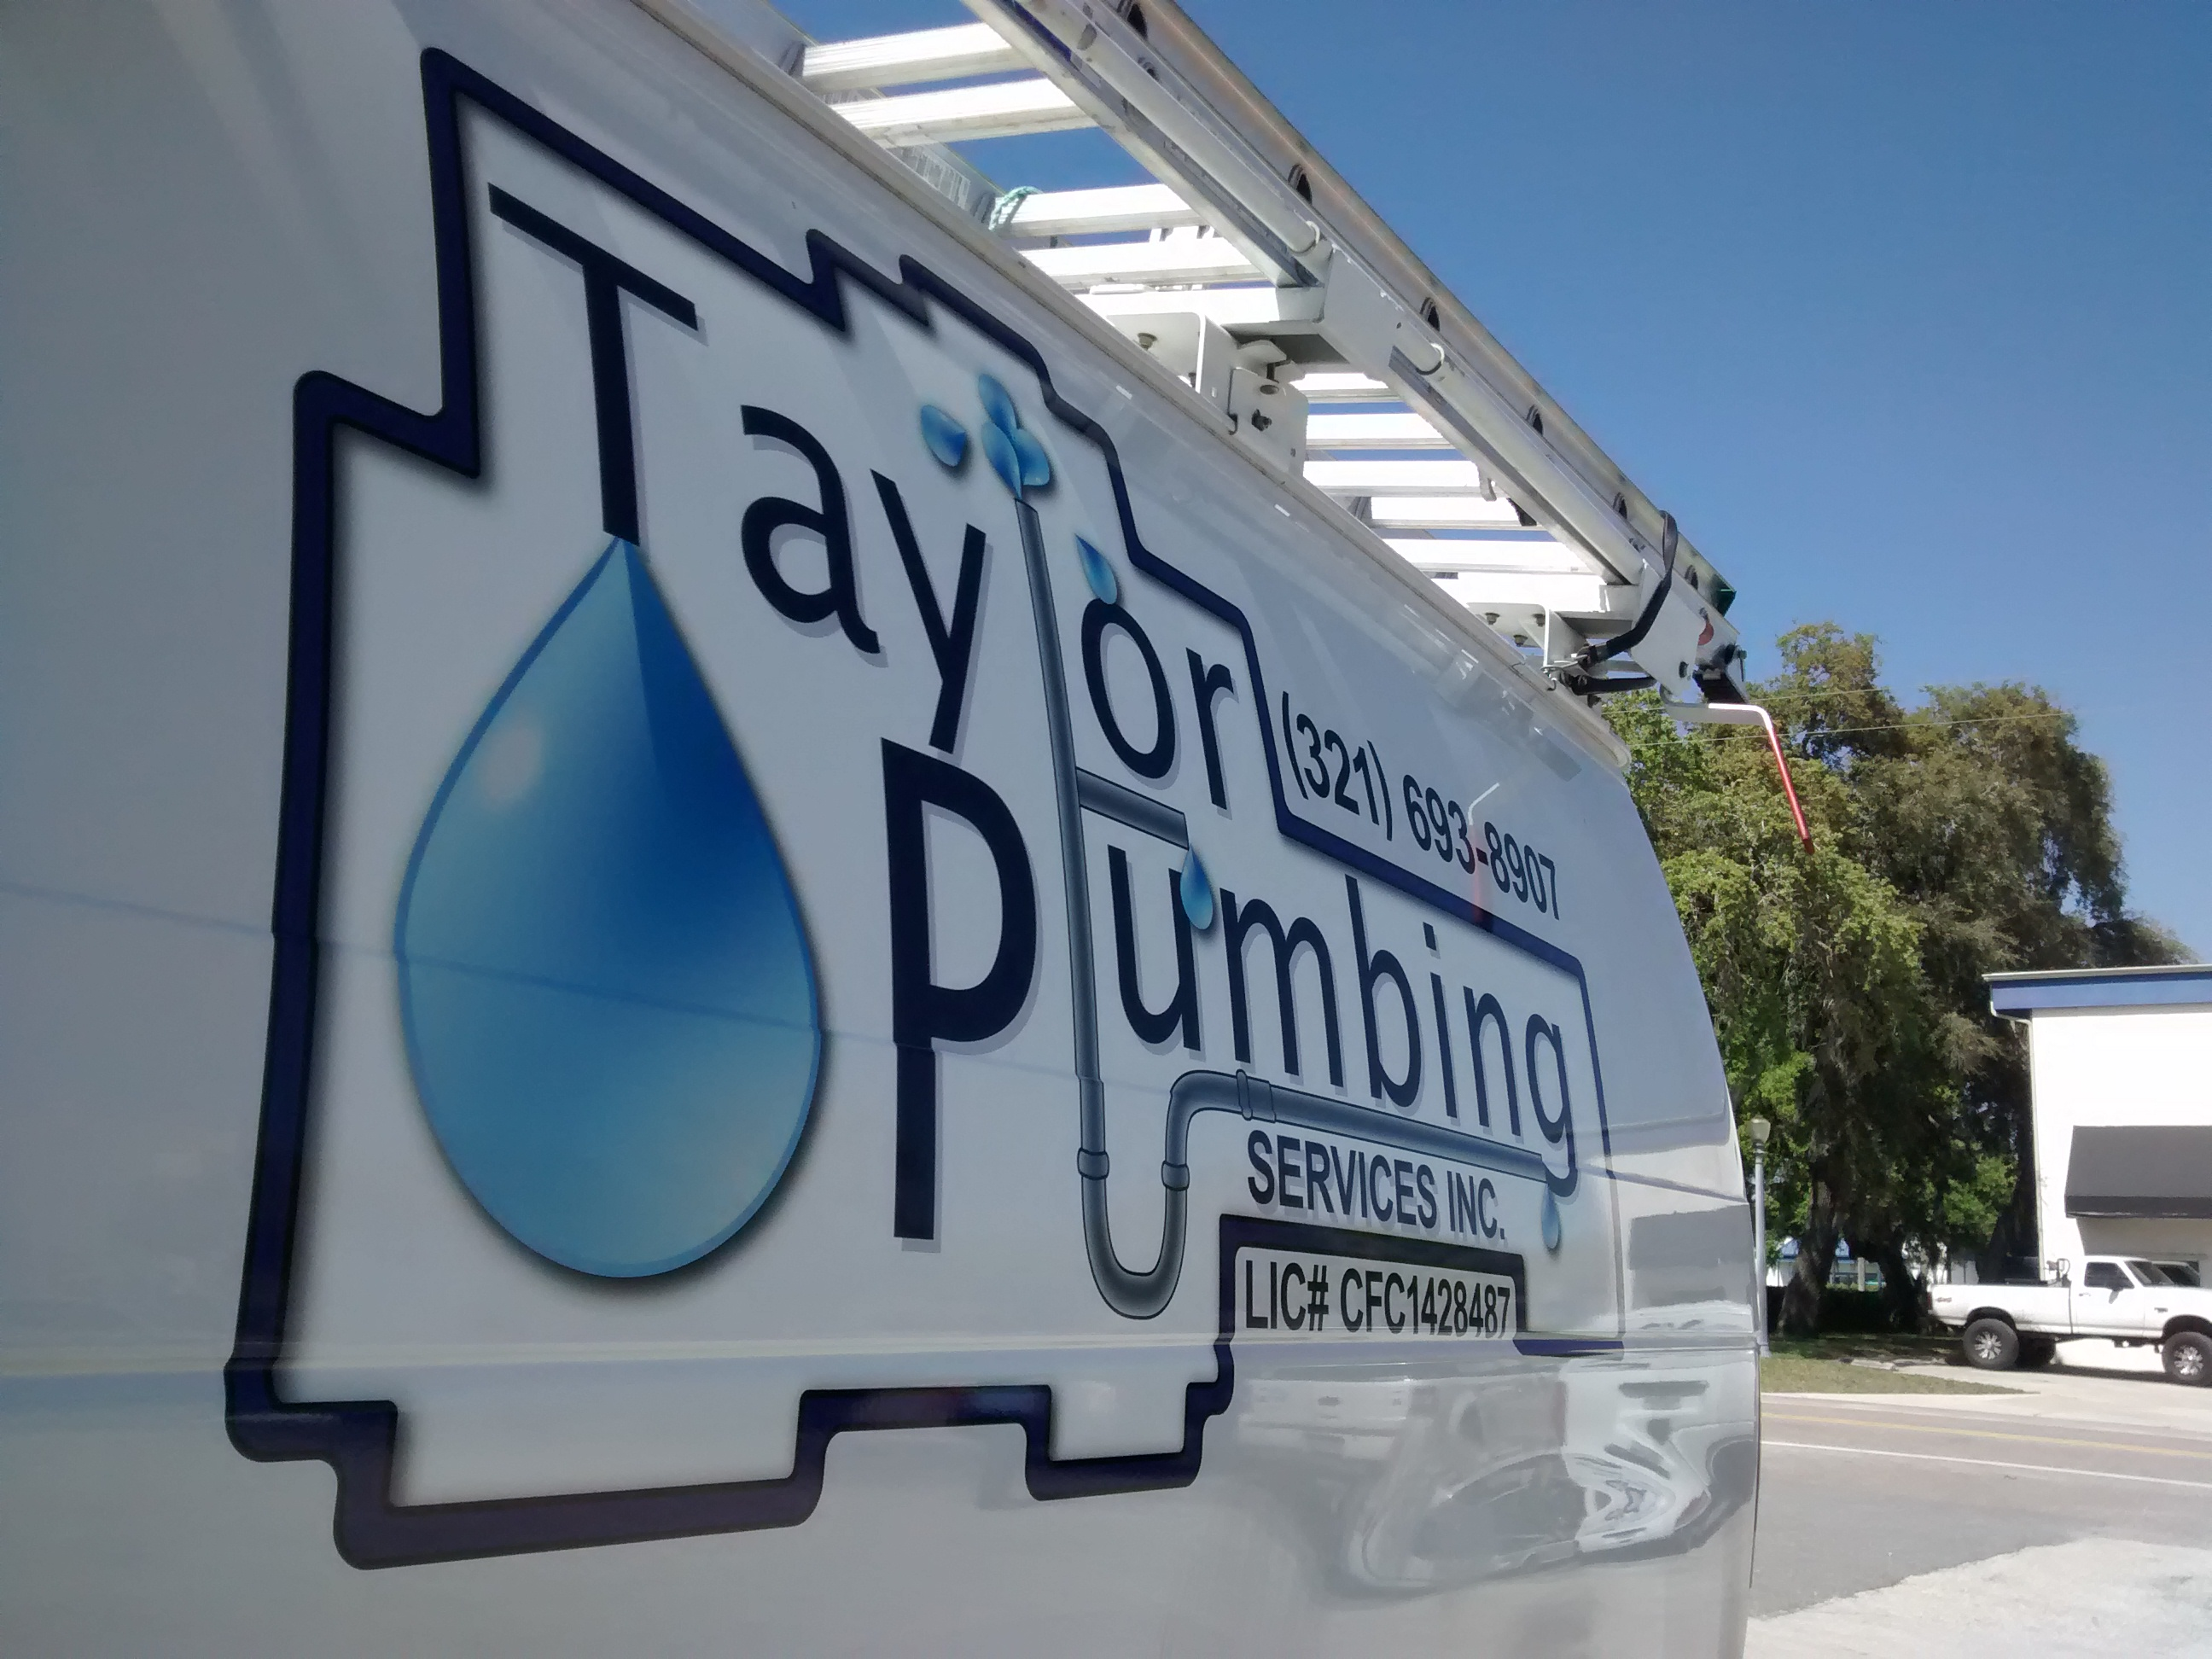 Taylor Plumbing - Vehicle Graphics - Complete - Driver, Detail